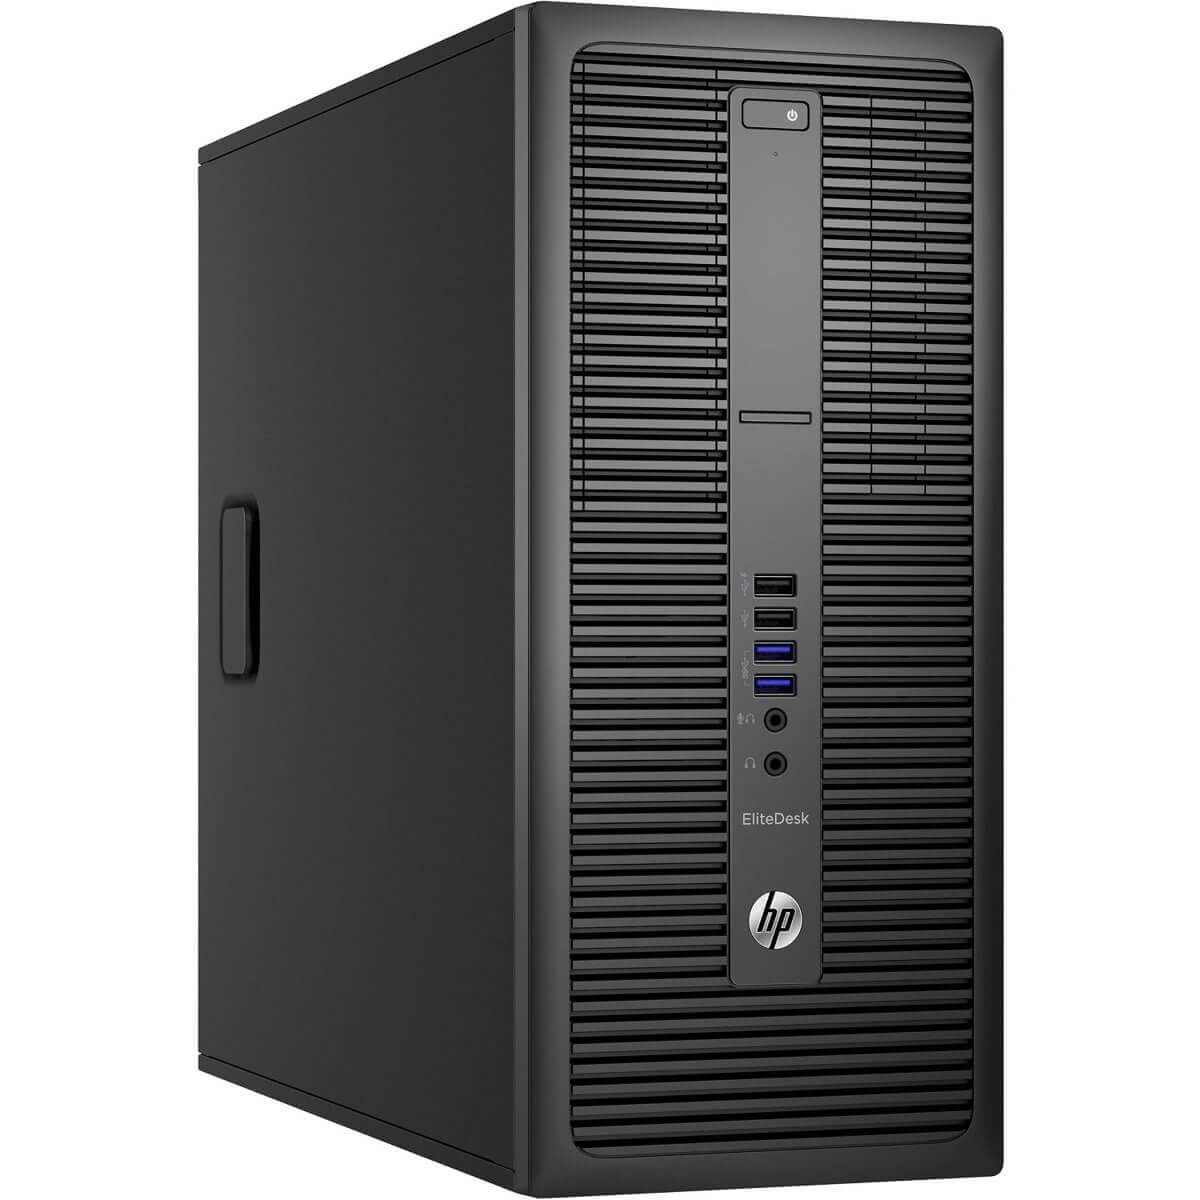 HP ELITEDESK 800 G2 TOWER I5-6400 2.7 / 16384 MB DDR4 / 256 GB SSD NOVE + 500 GB / WINDOWS 10 PRO